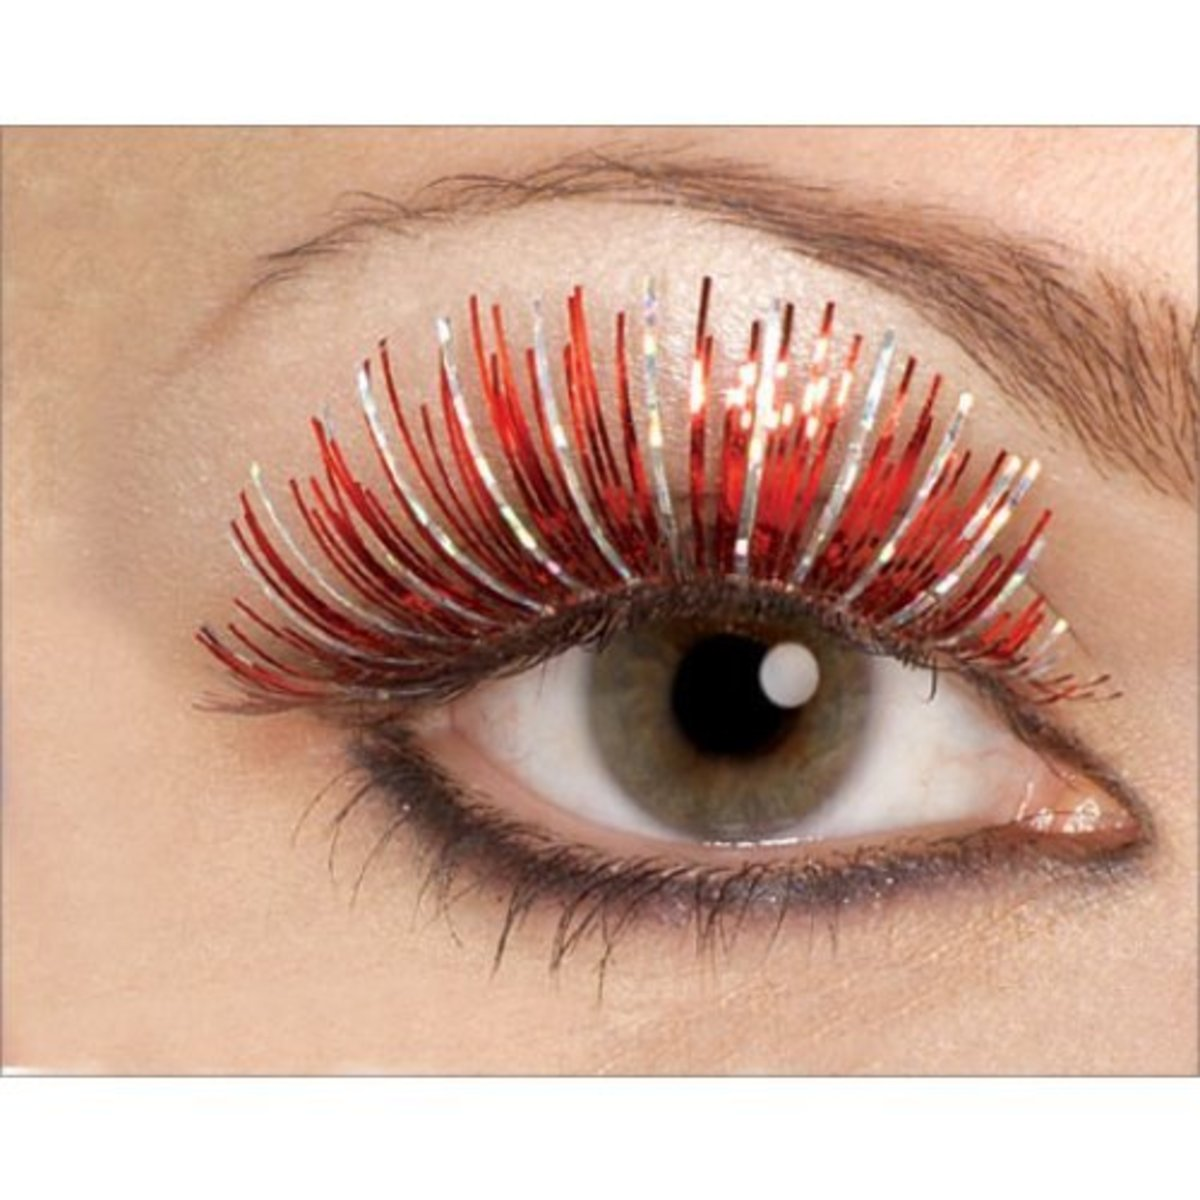 Losing eyelashes - find out why and how to stop it.